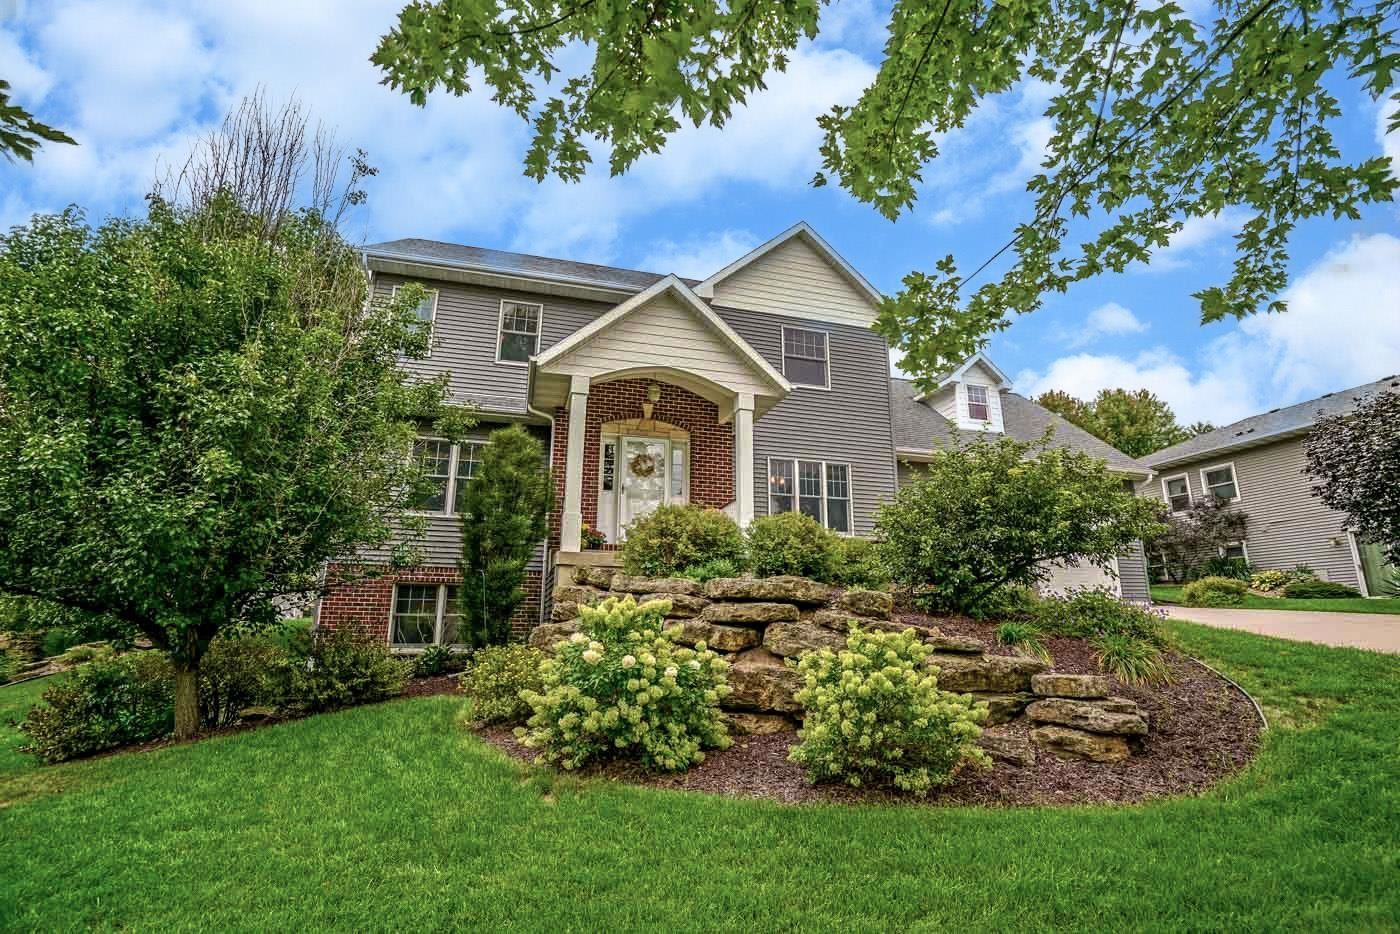 608 Lucky Tr, Mount Horeb, WI 53572 - #: 1919025